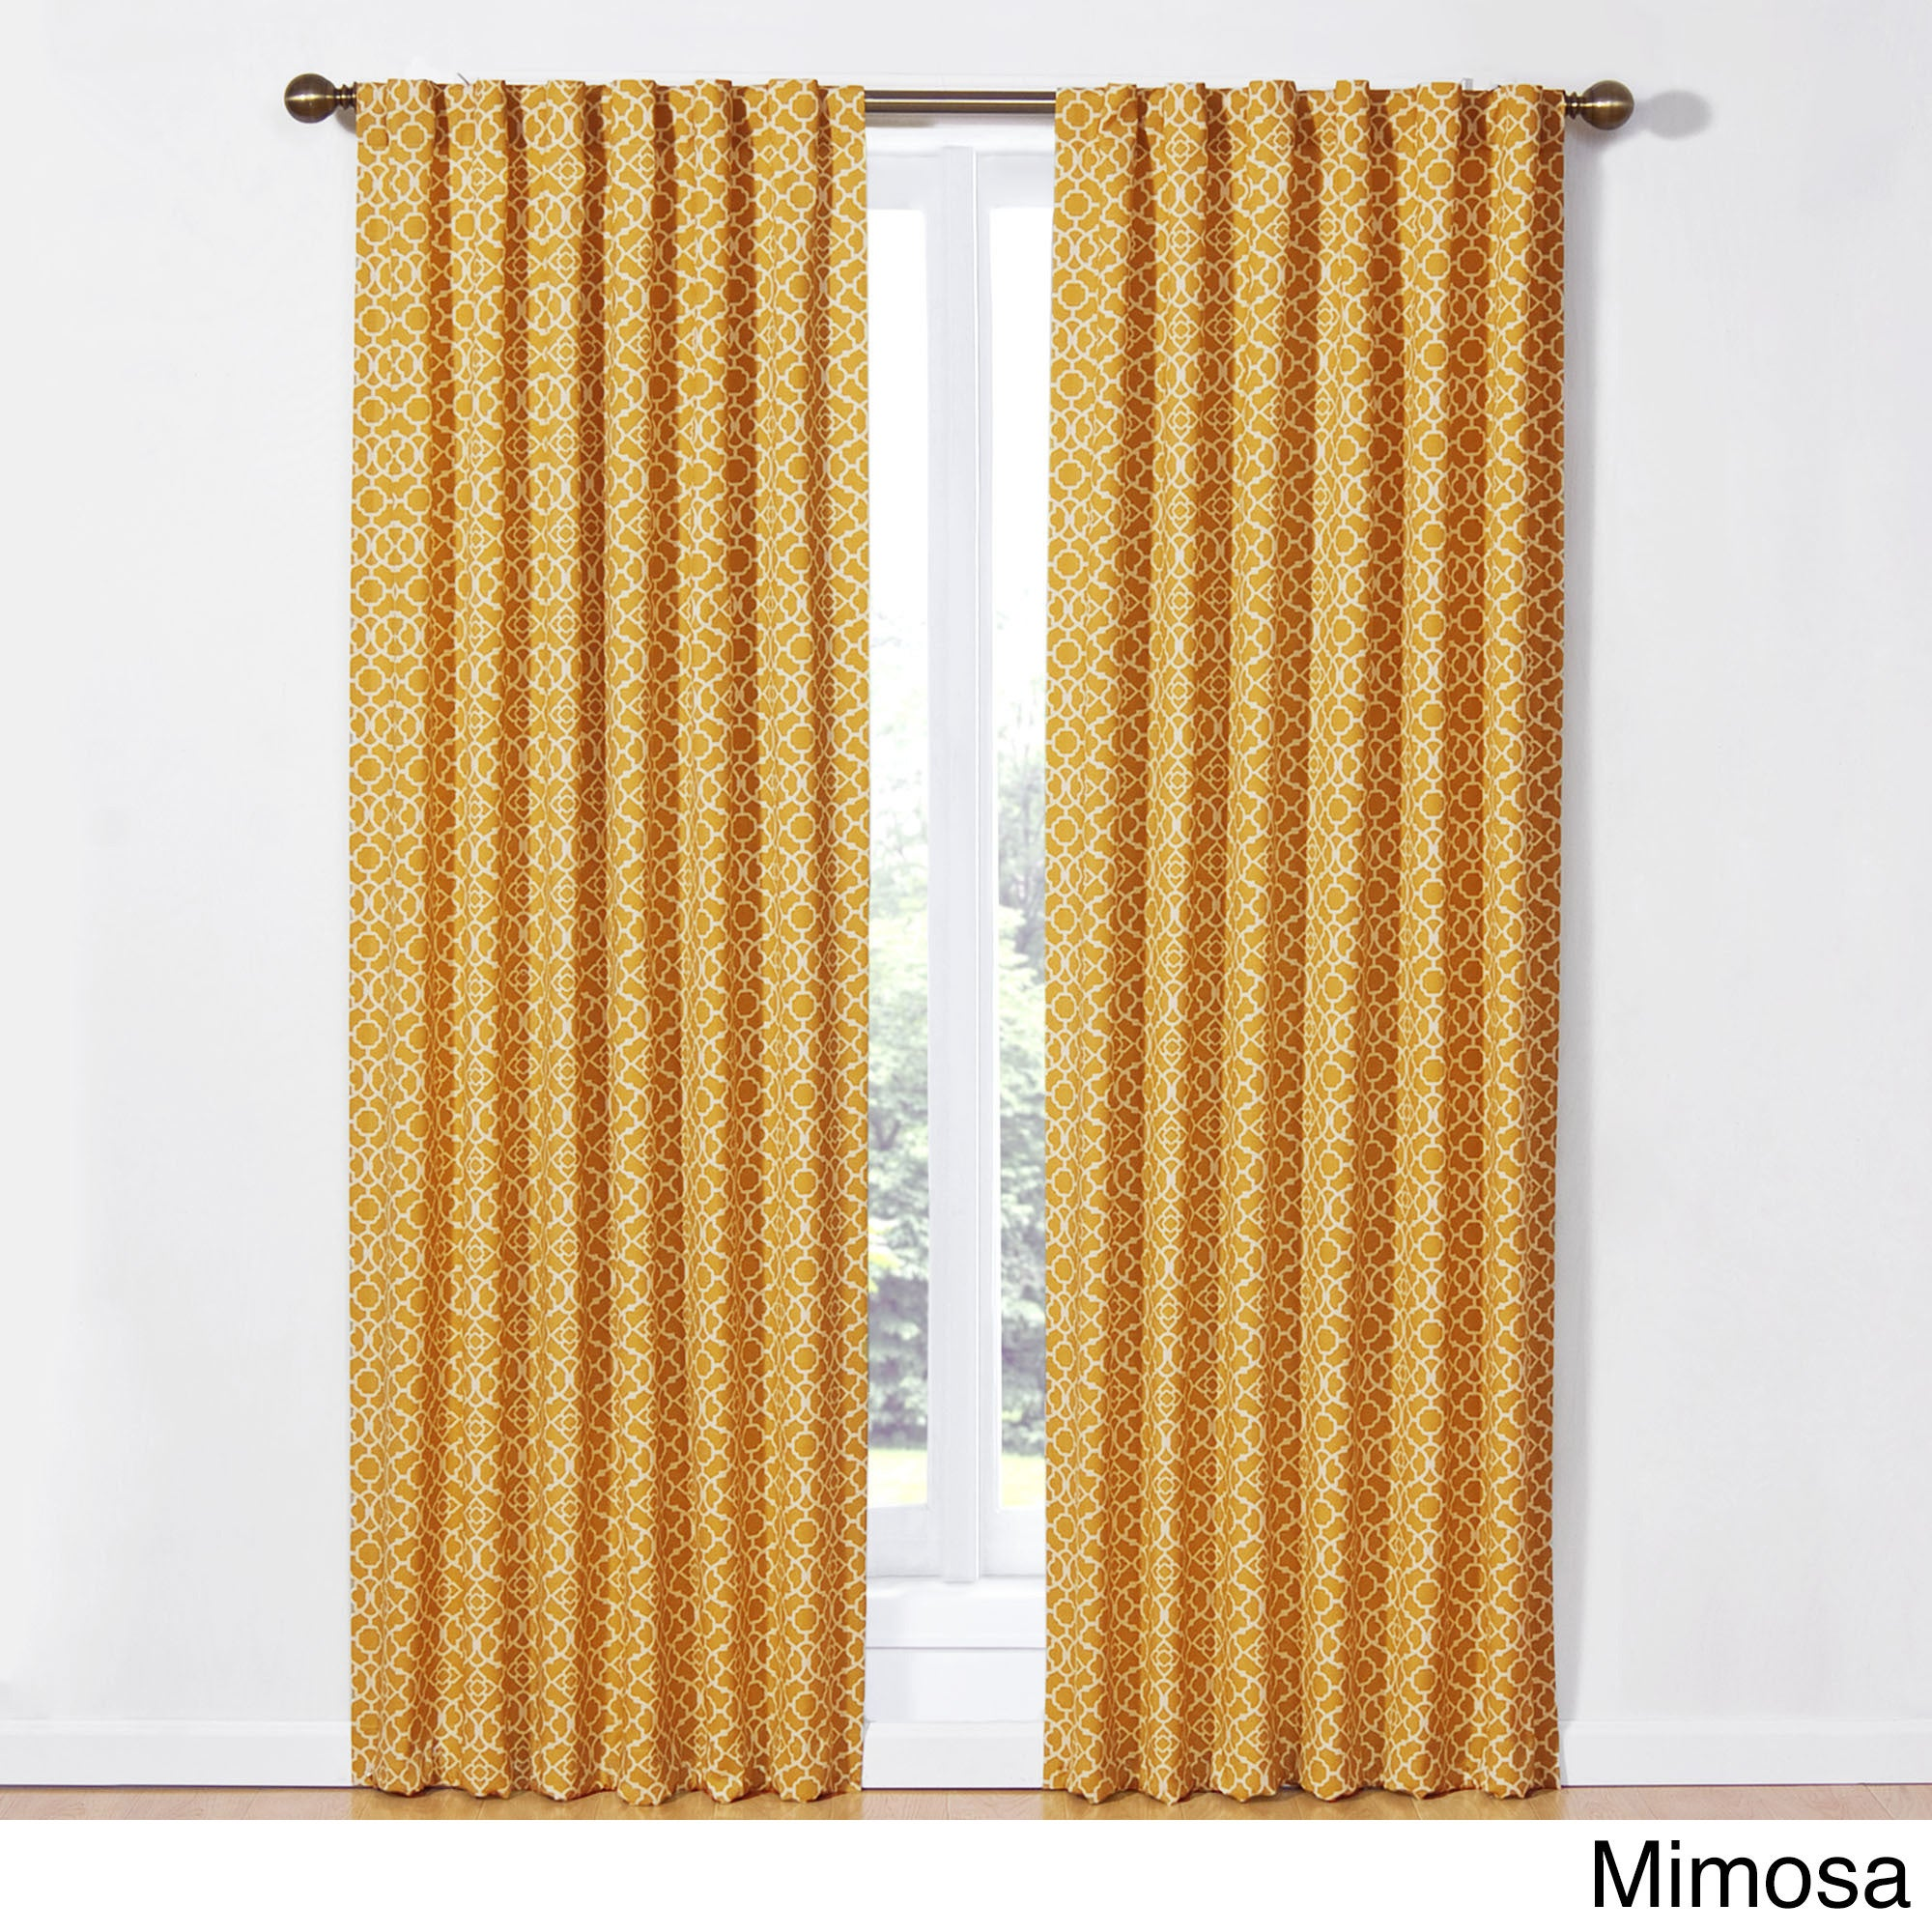 awesome Waverly Lovely Lattice Curtain Part - 7: Shop Waverly Lovely Lattice Rod-Pocket Curtain Panel with Tieback - Free  Shipping On Orders Over $45 - Overstock.com - 11003173